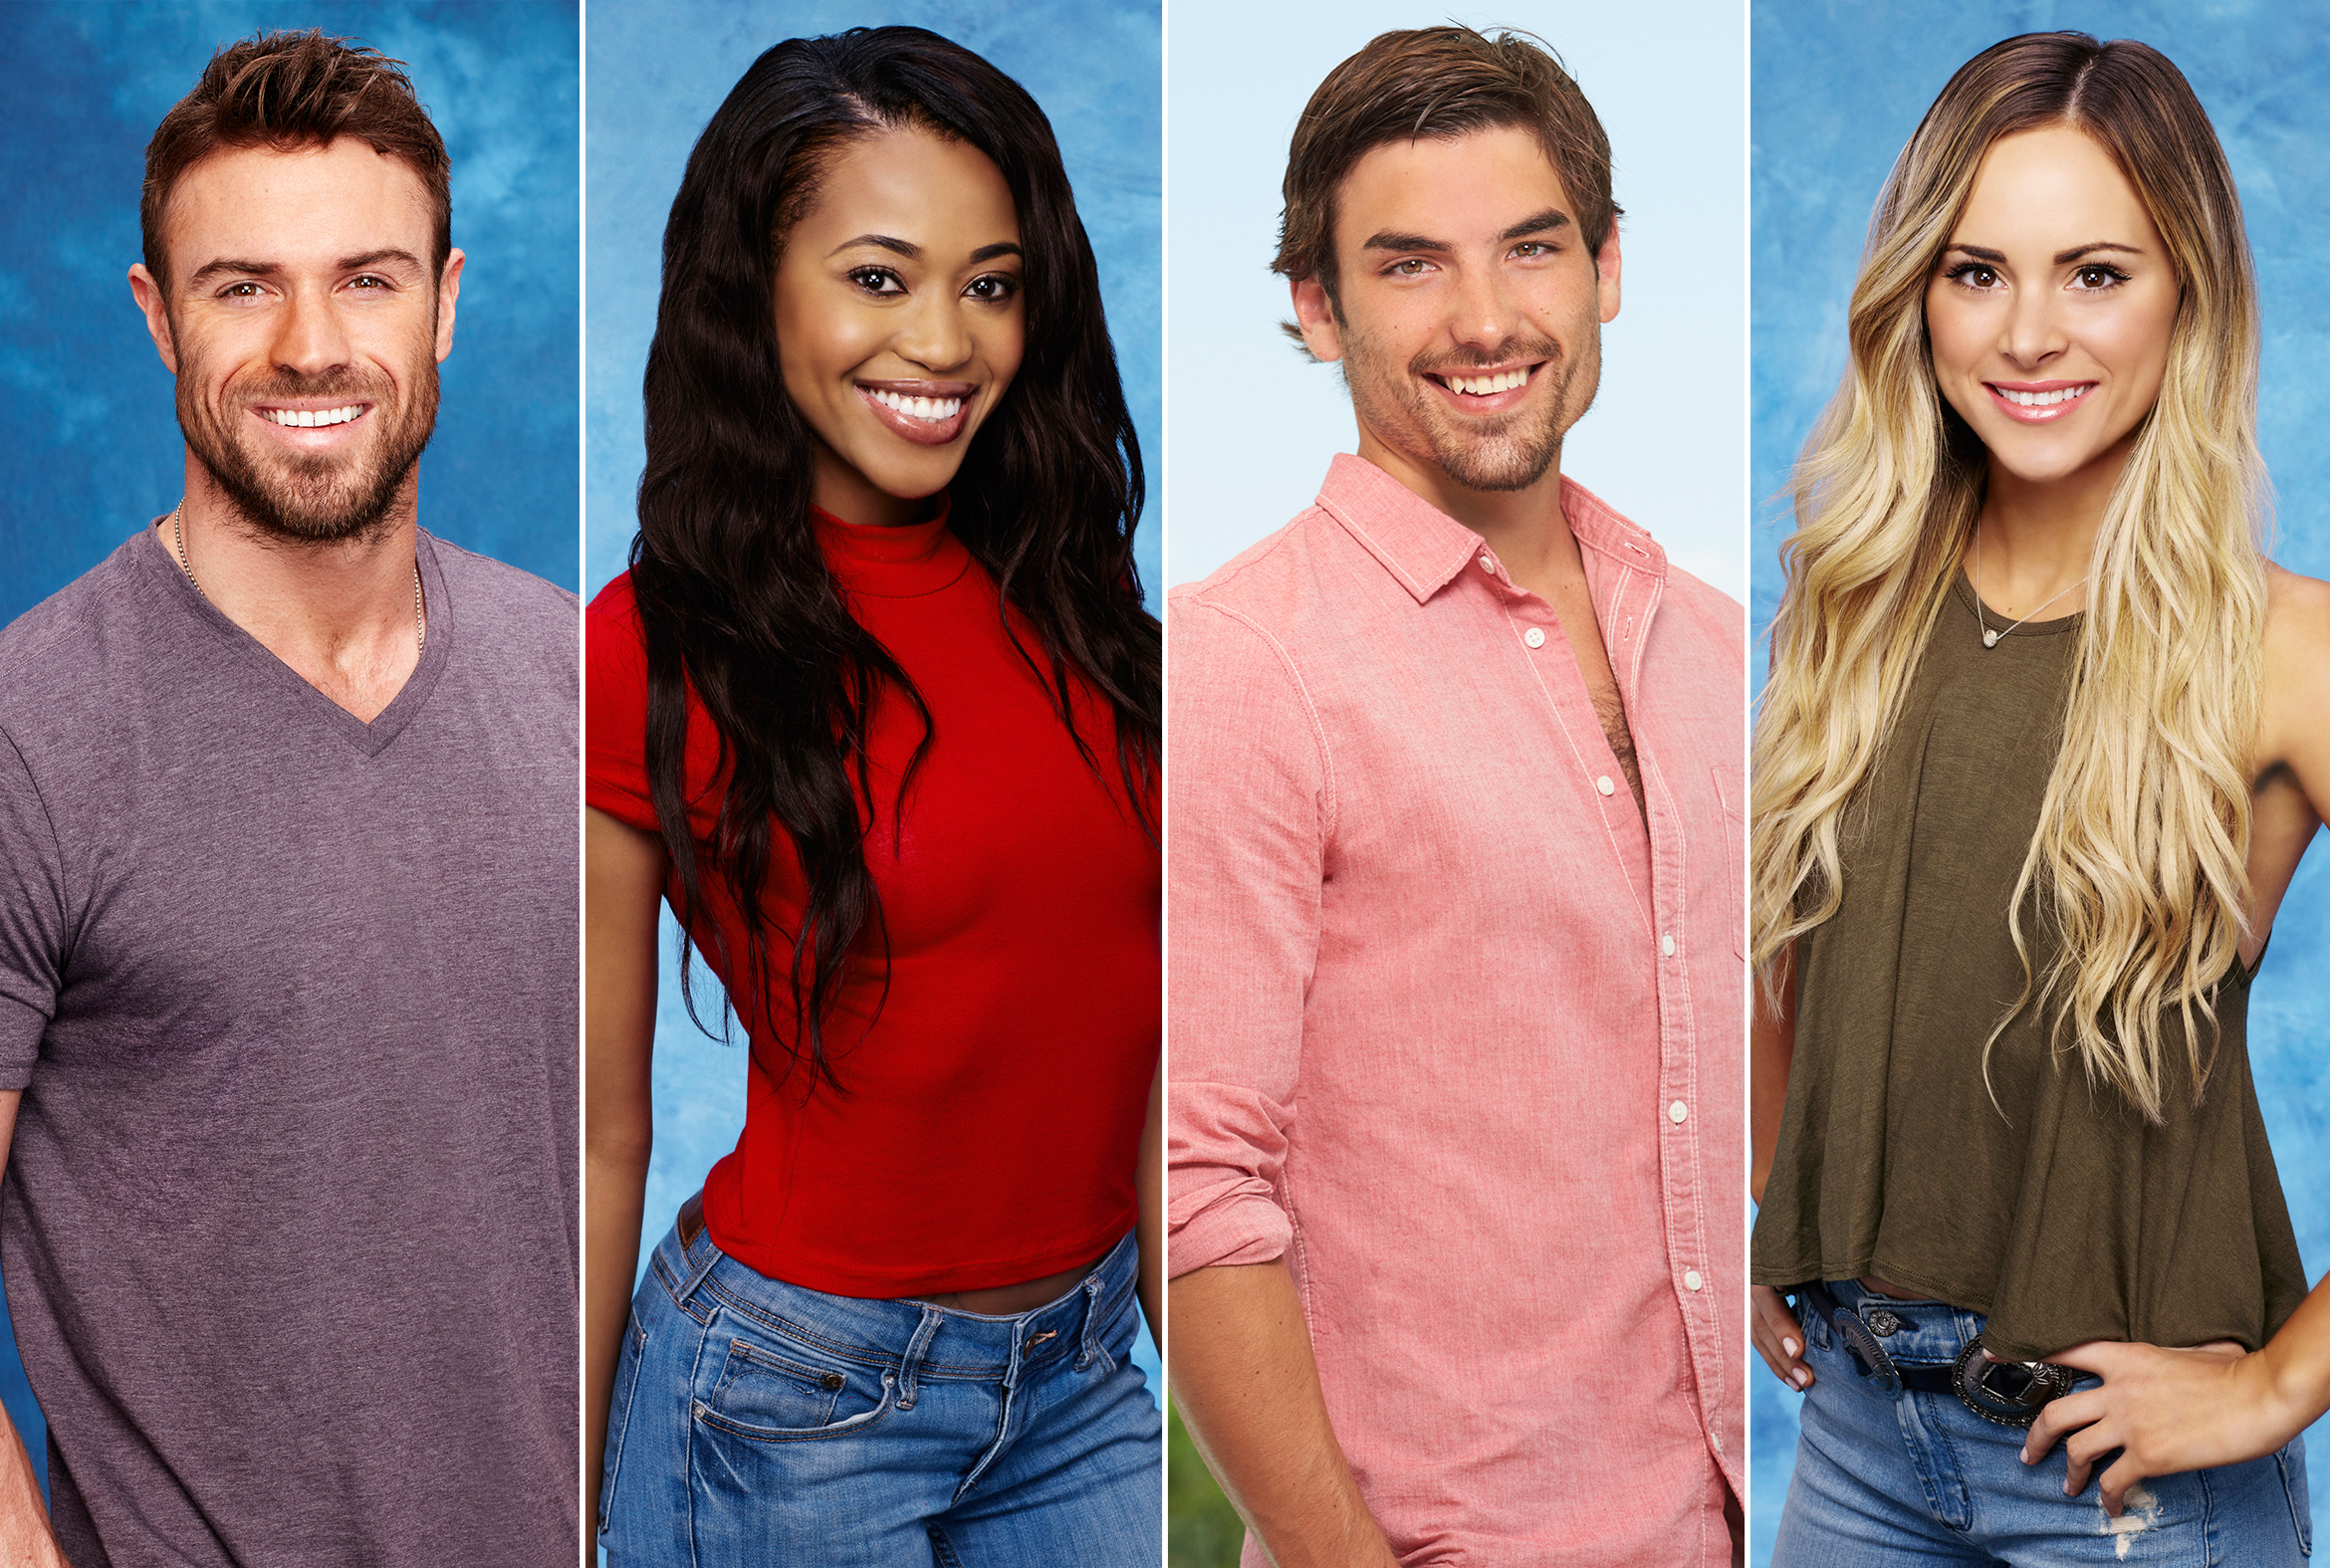 Meet the cast of _Bachelor In Paradise_ Season 3